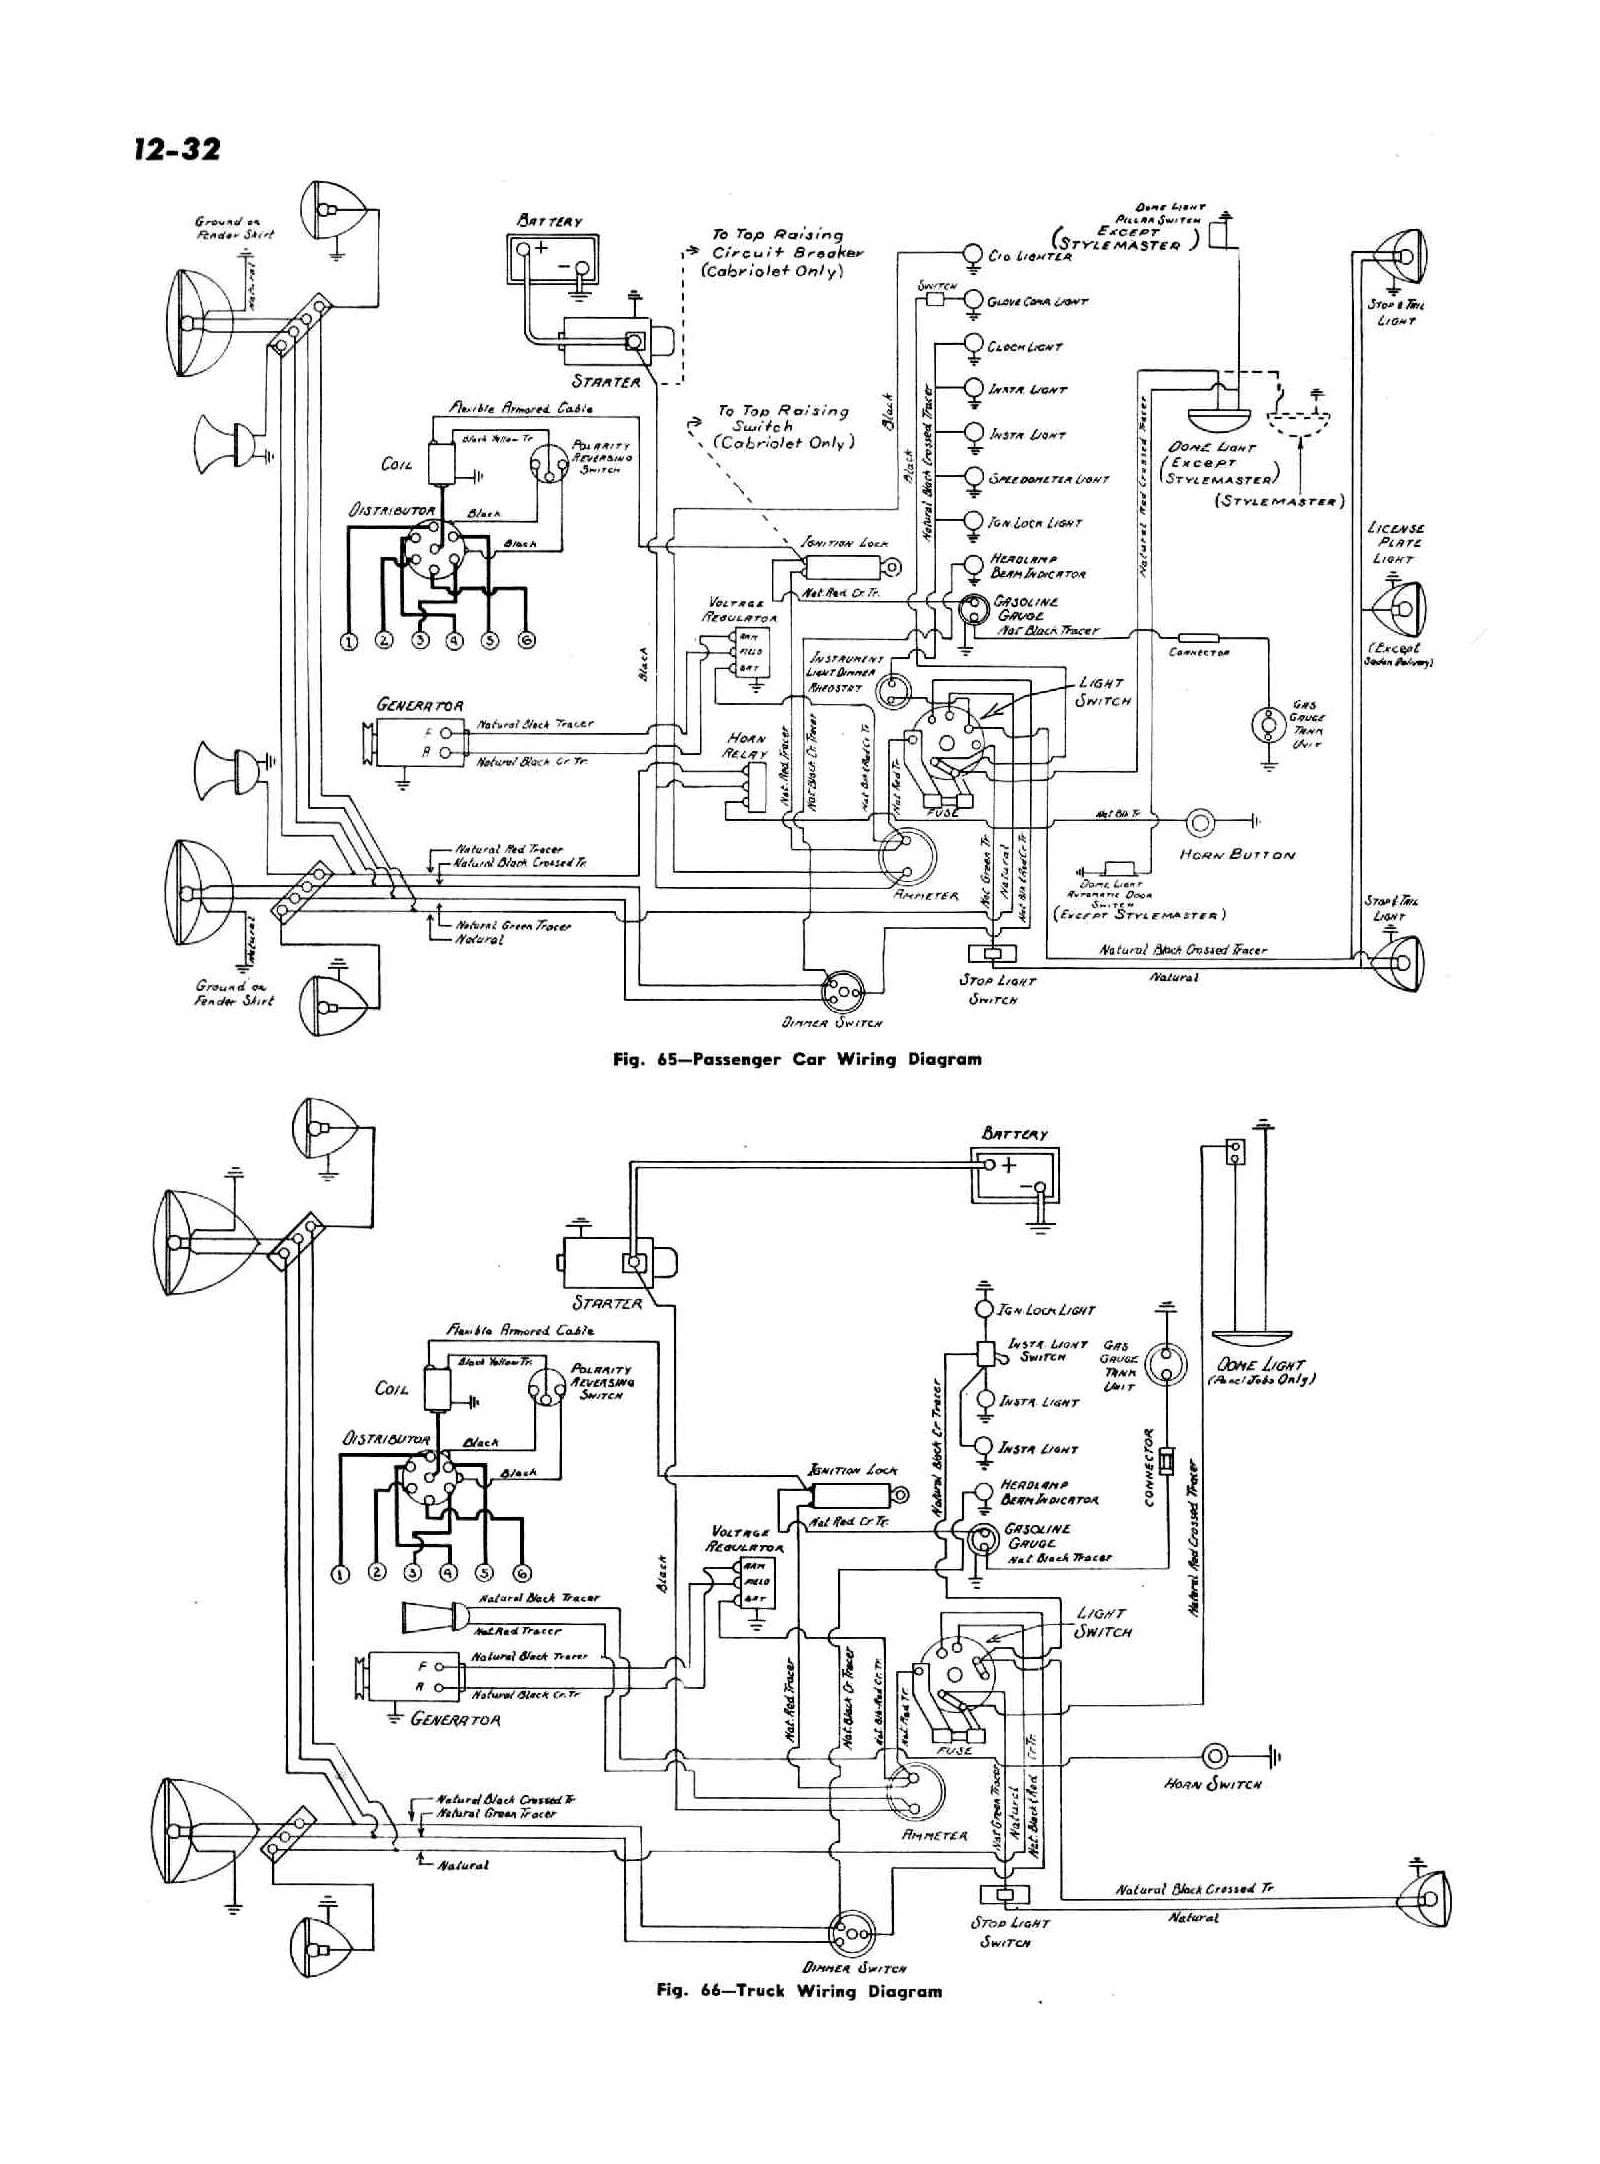 Horn For Truck Wiring Diagram